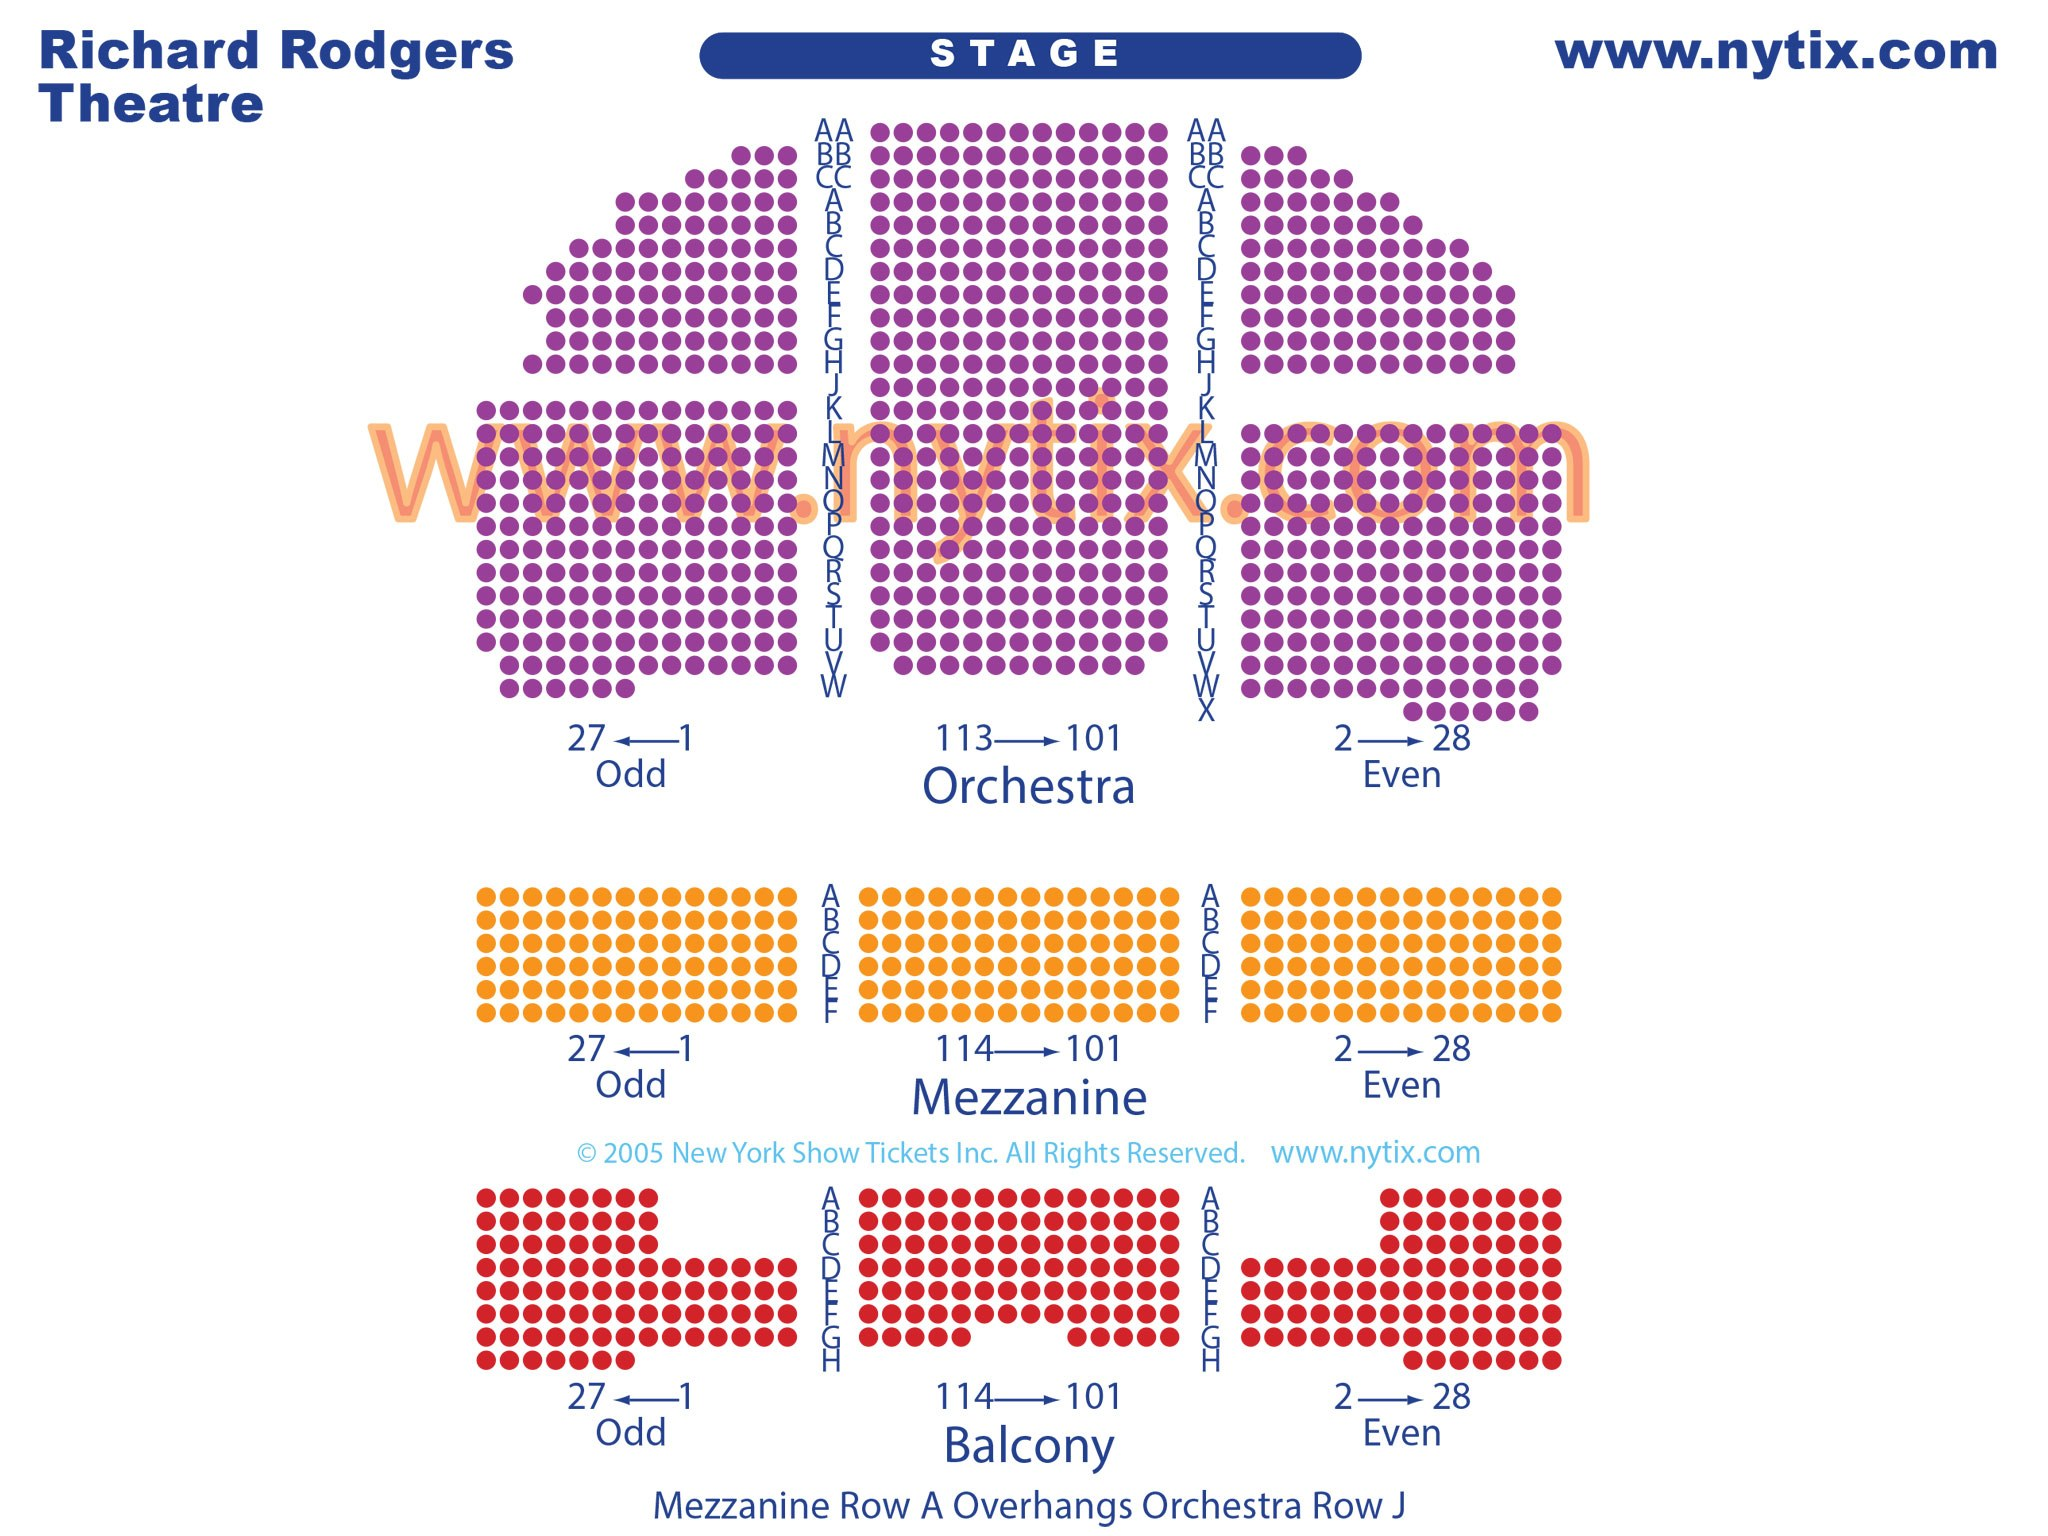 Richard Rodgers Theatre Seating Chart